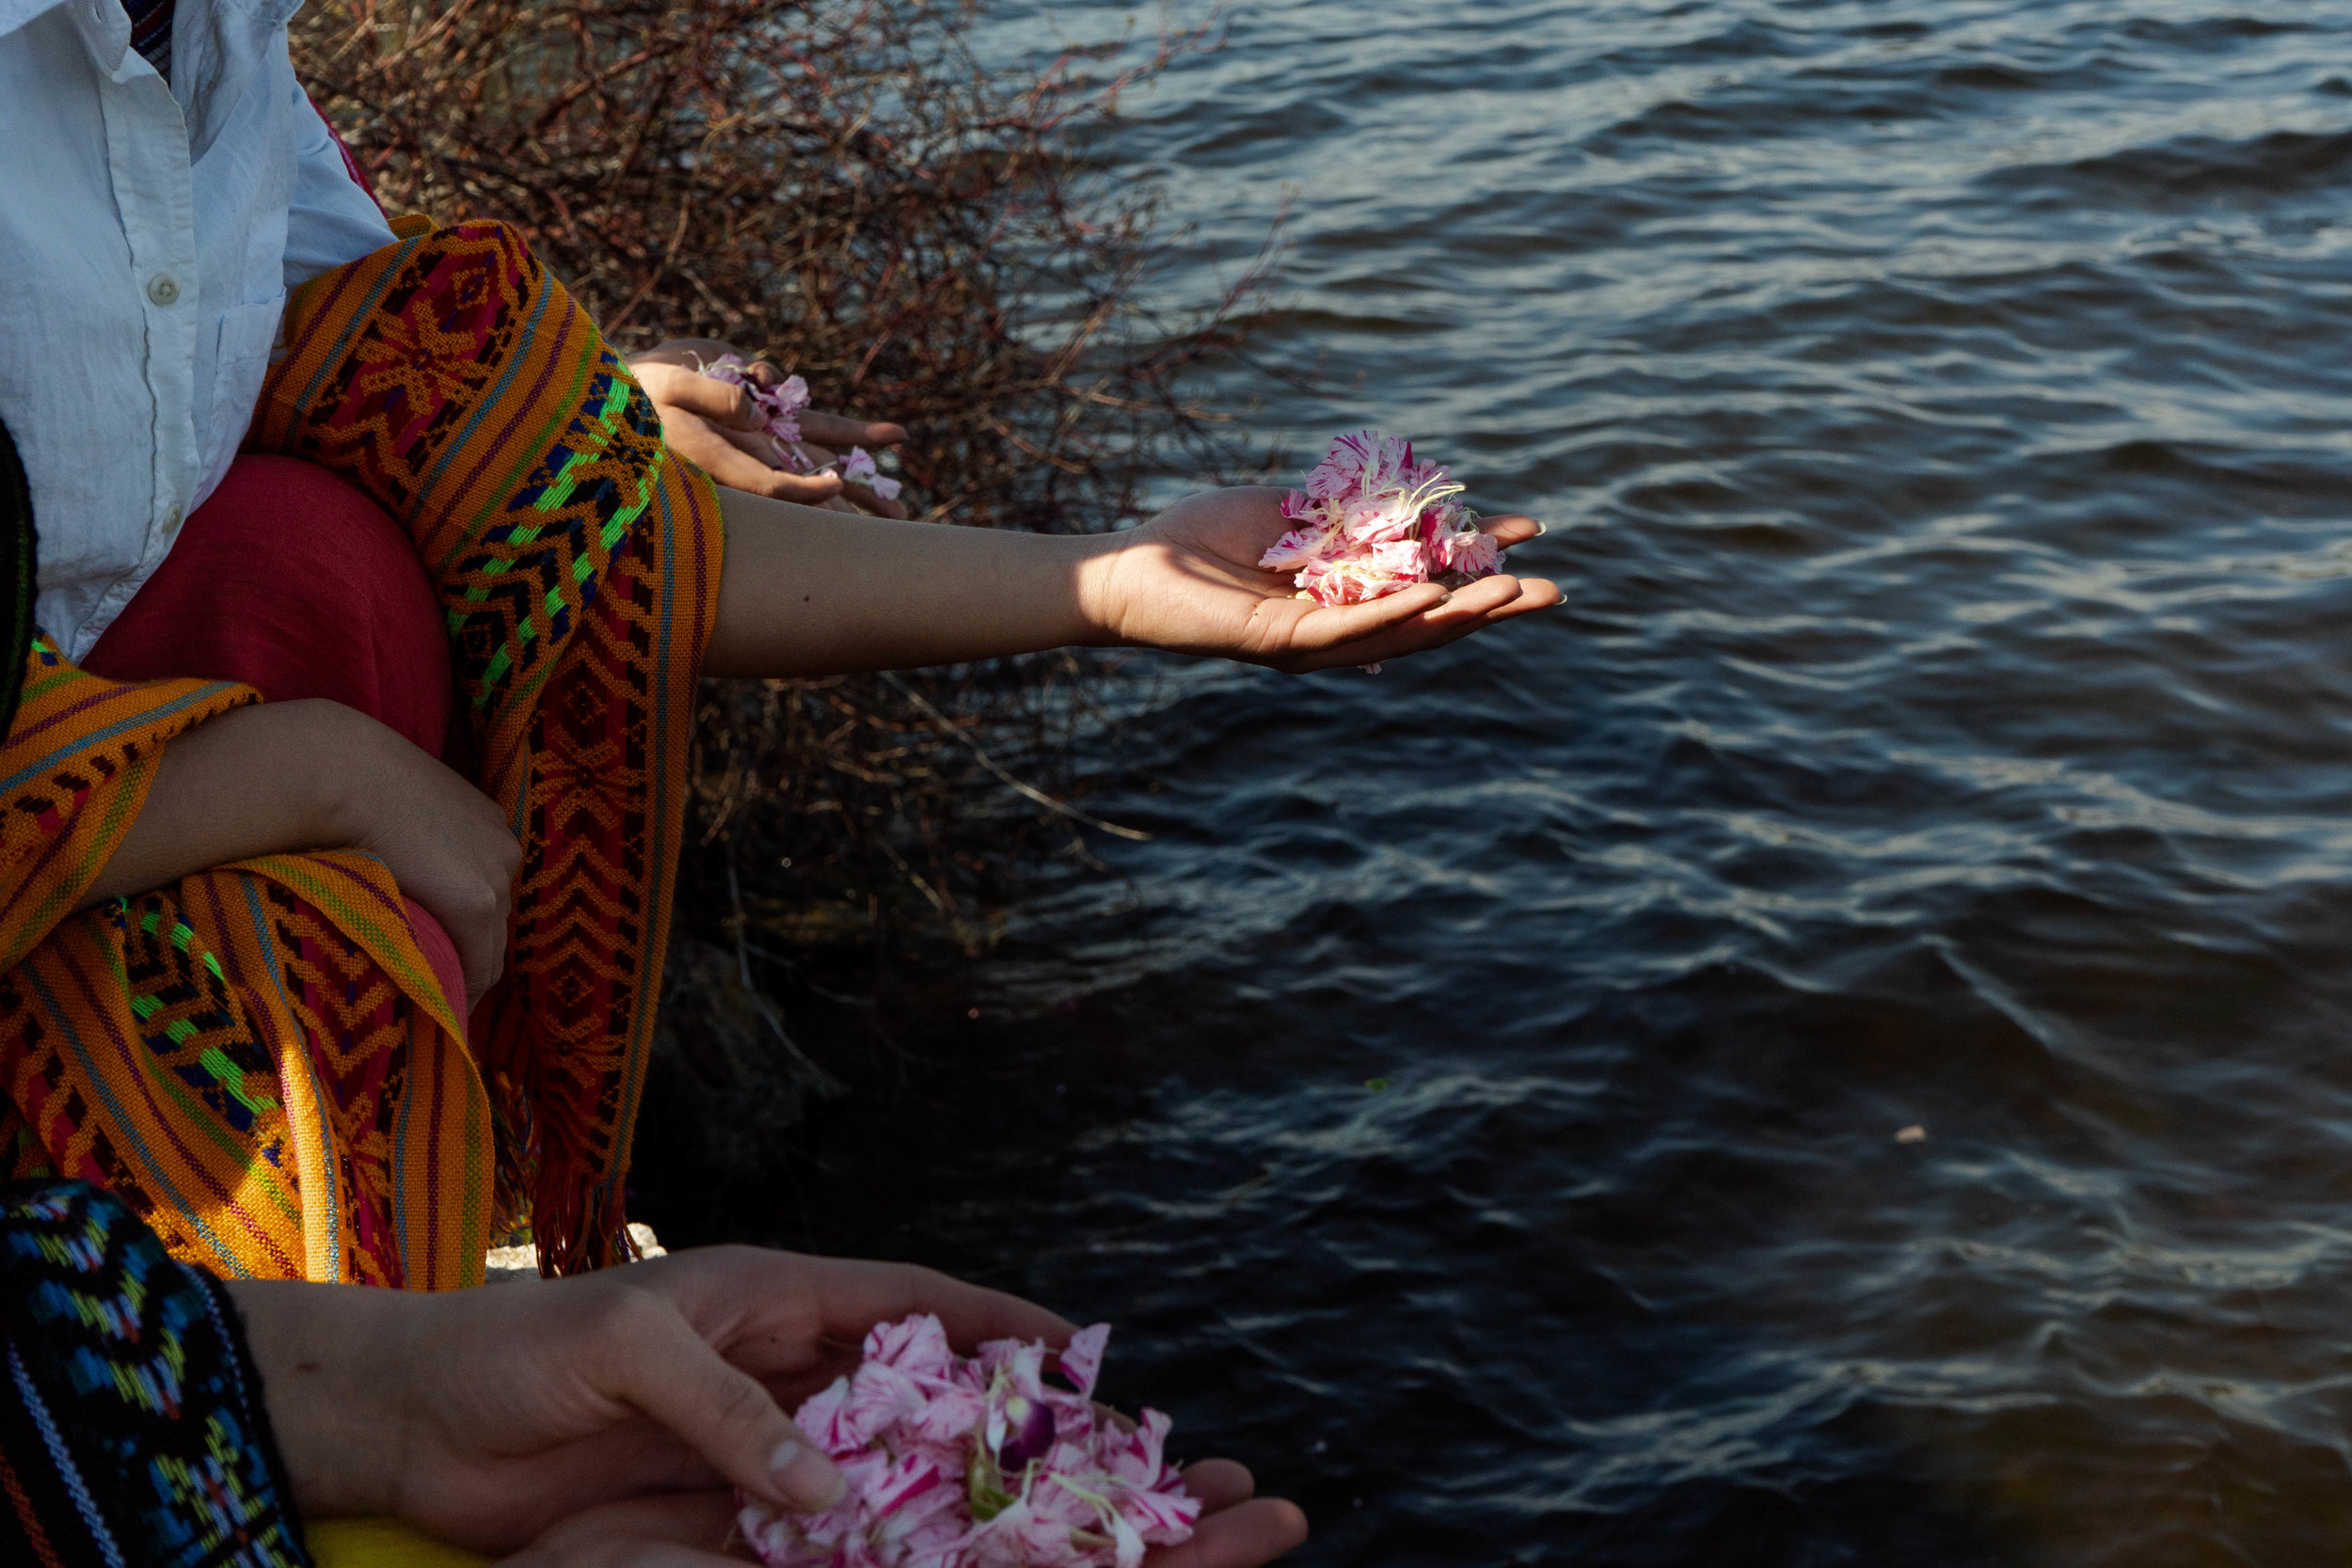 Flower offerings to Lake Phalen during the water ritual.